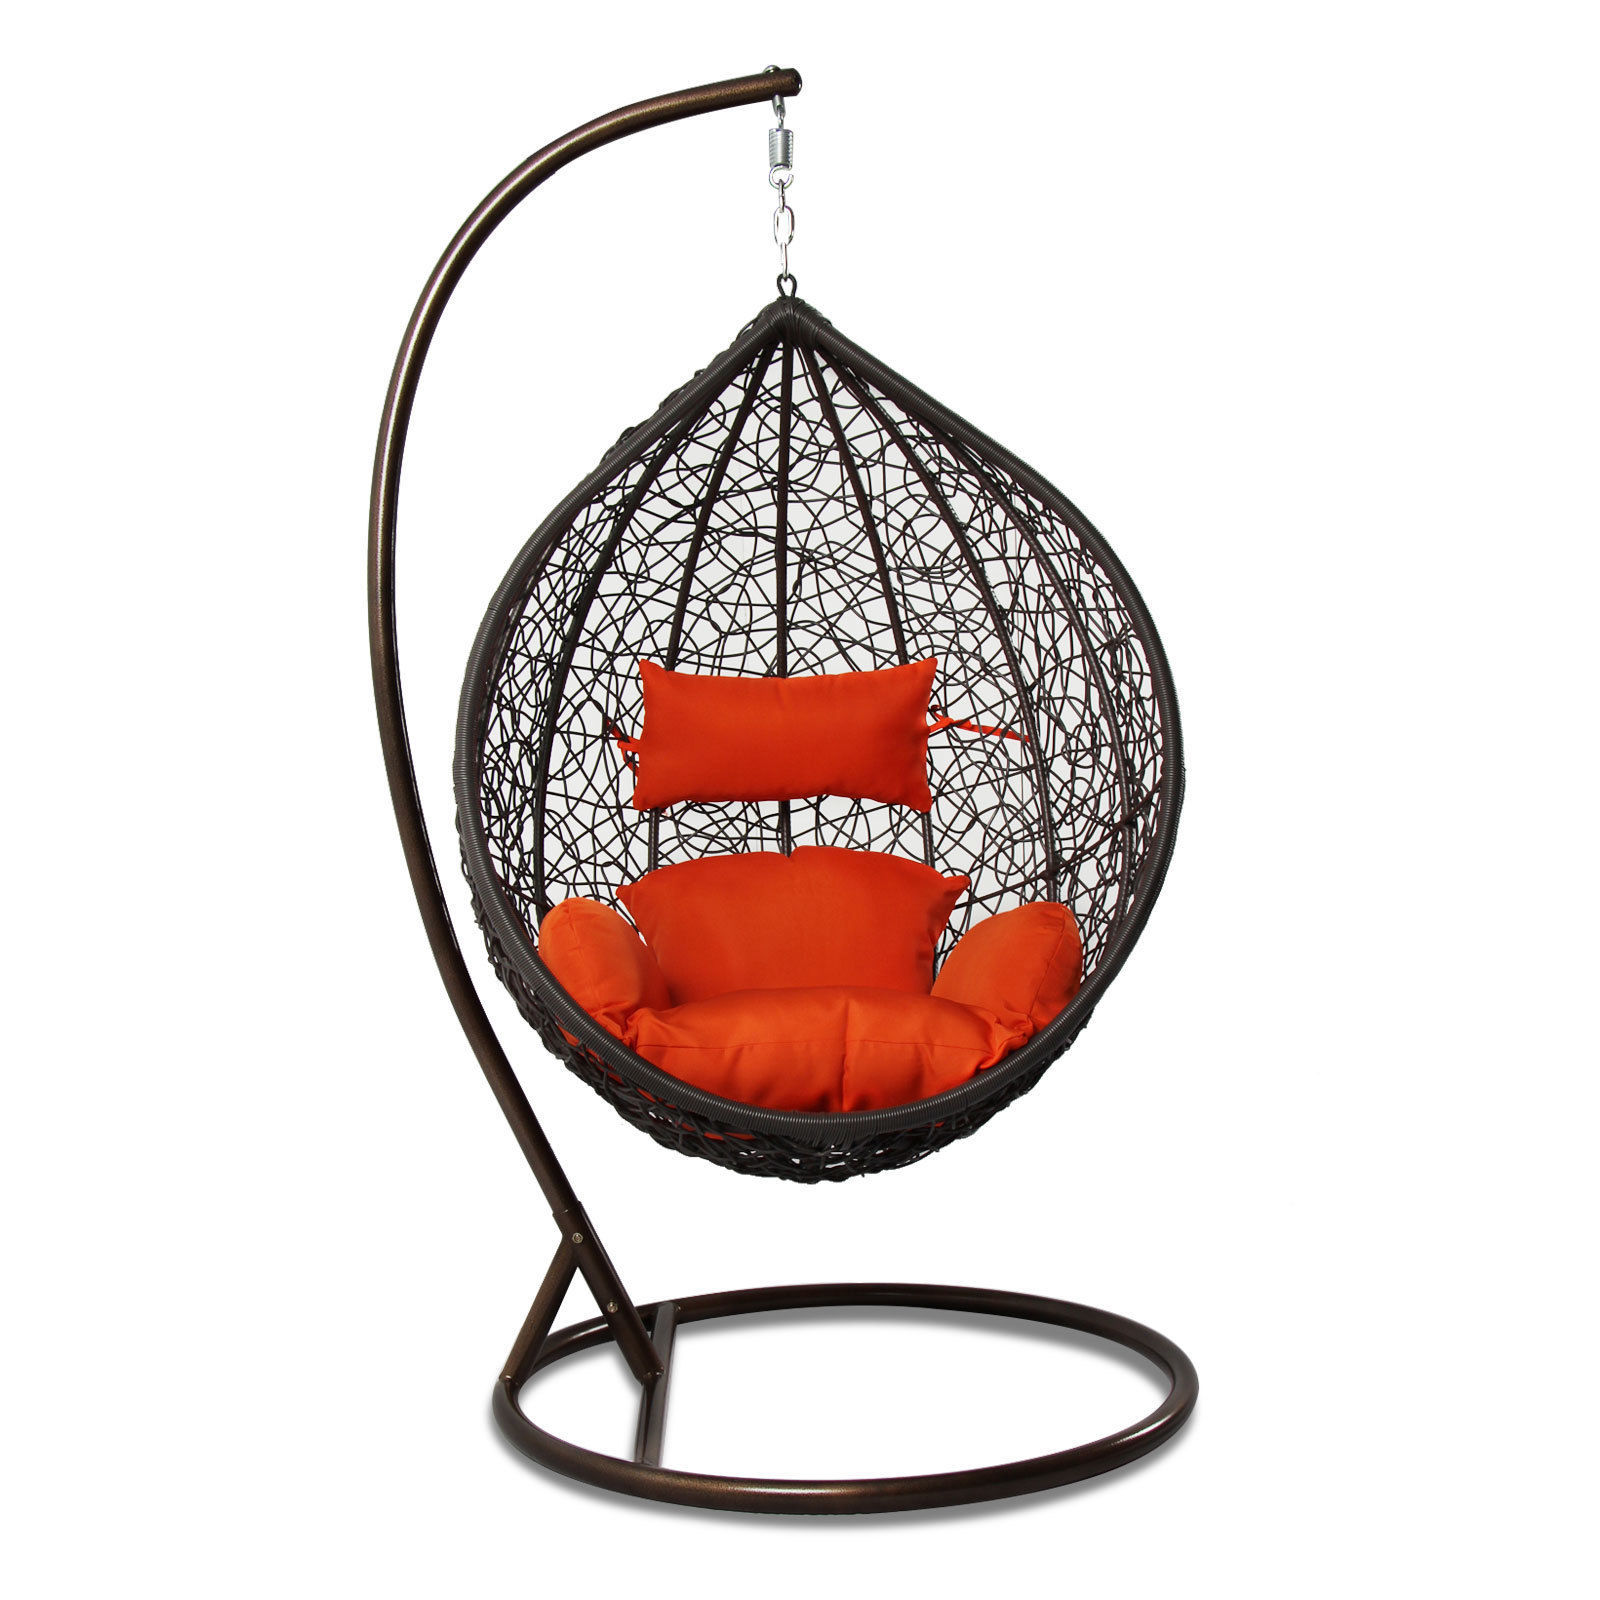 Rattan Swing Chair Egg Chair Rattan Outdoor Wicker Hanging Chair Egg Shape Stand Porch